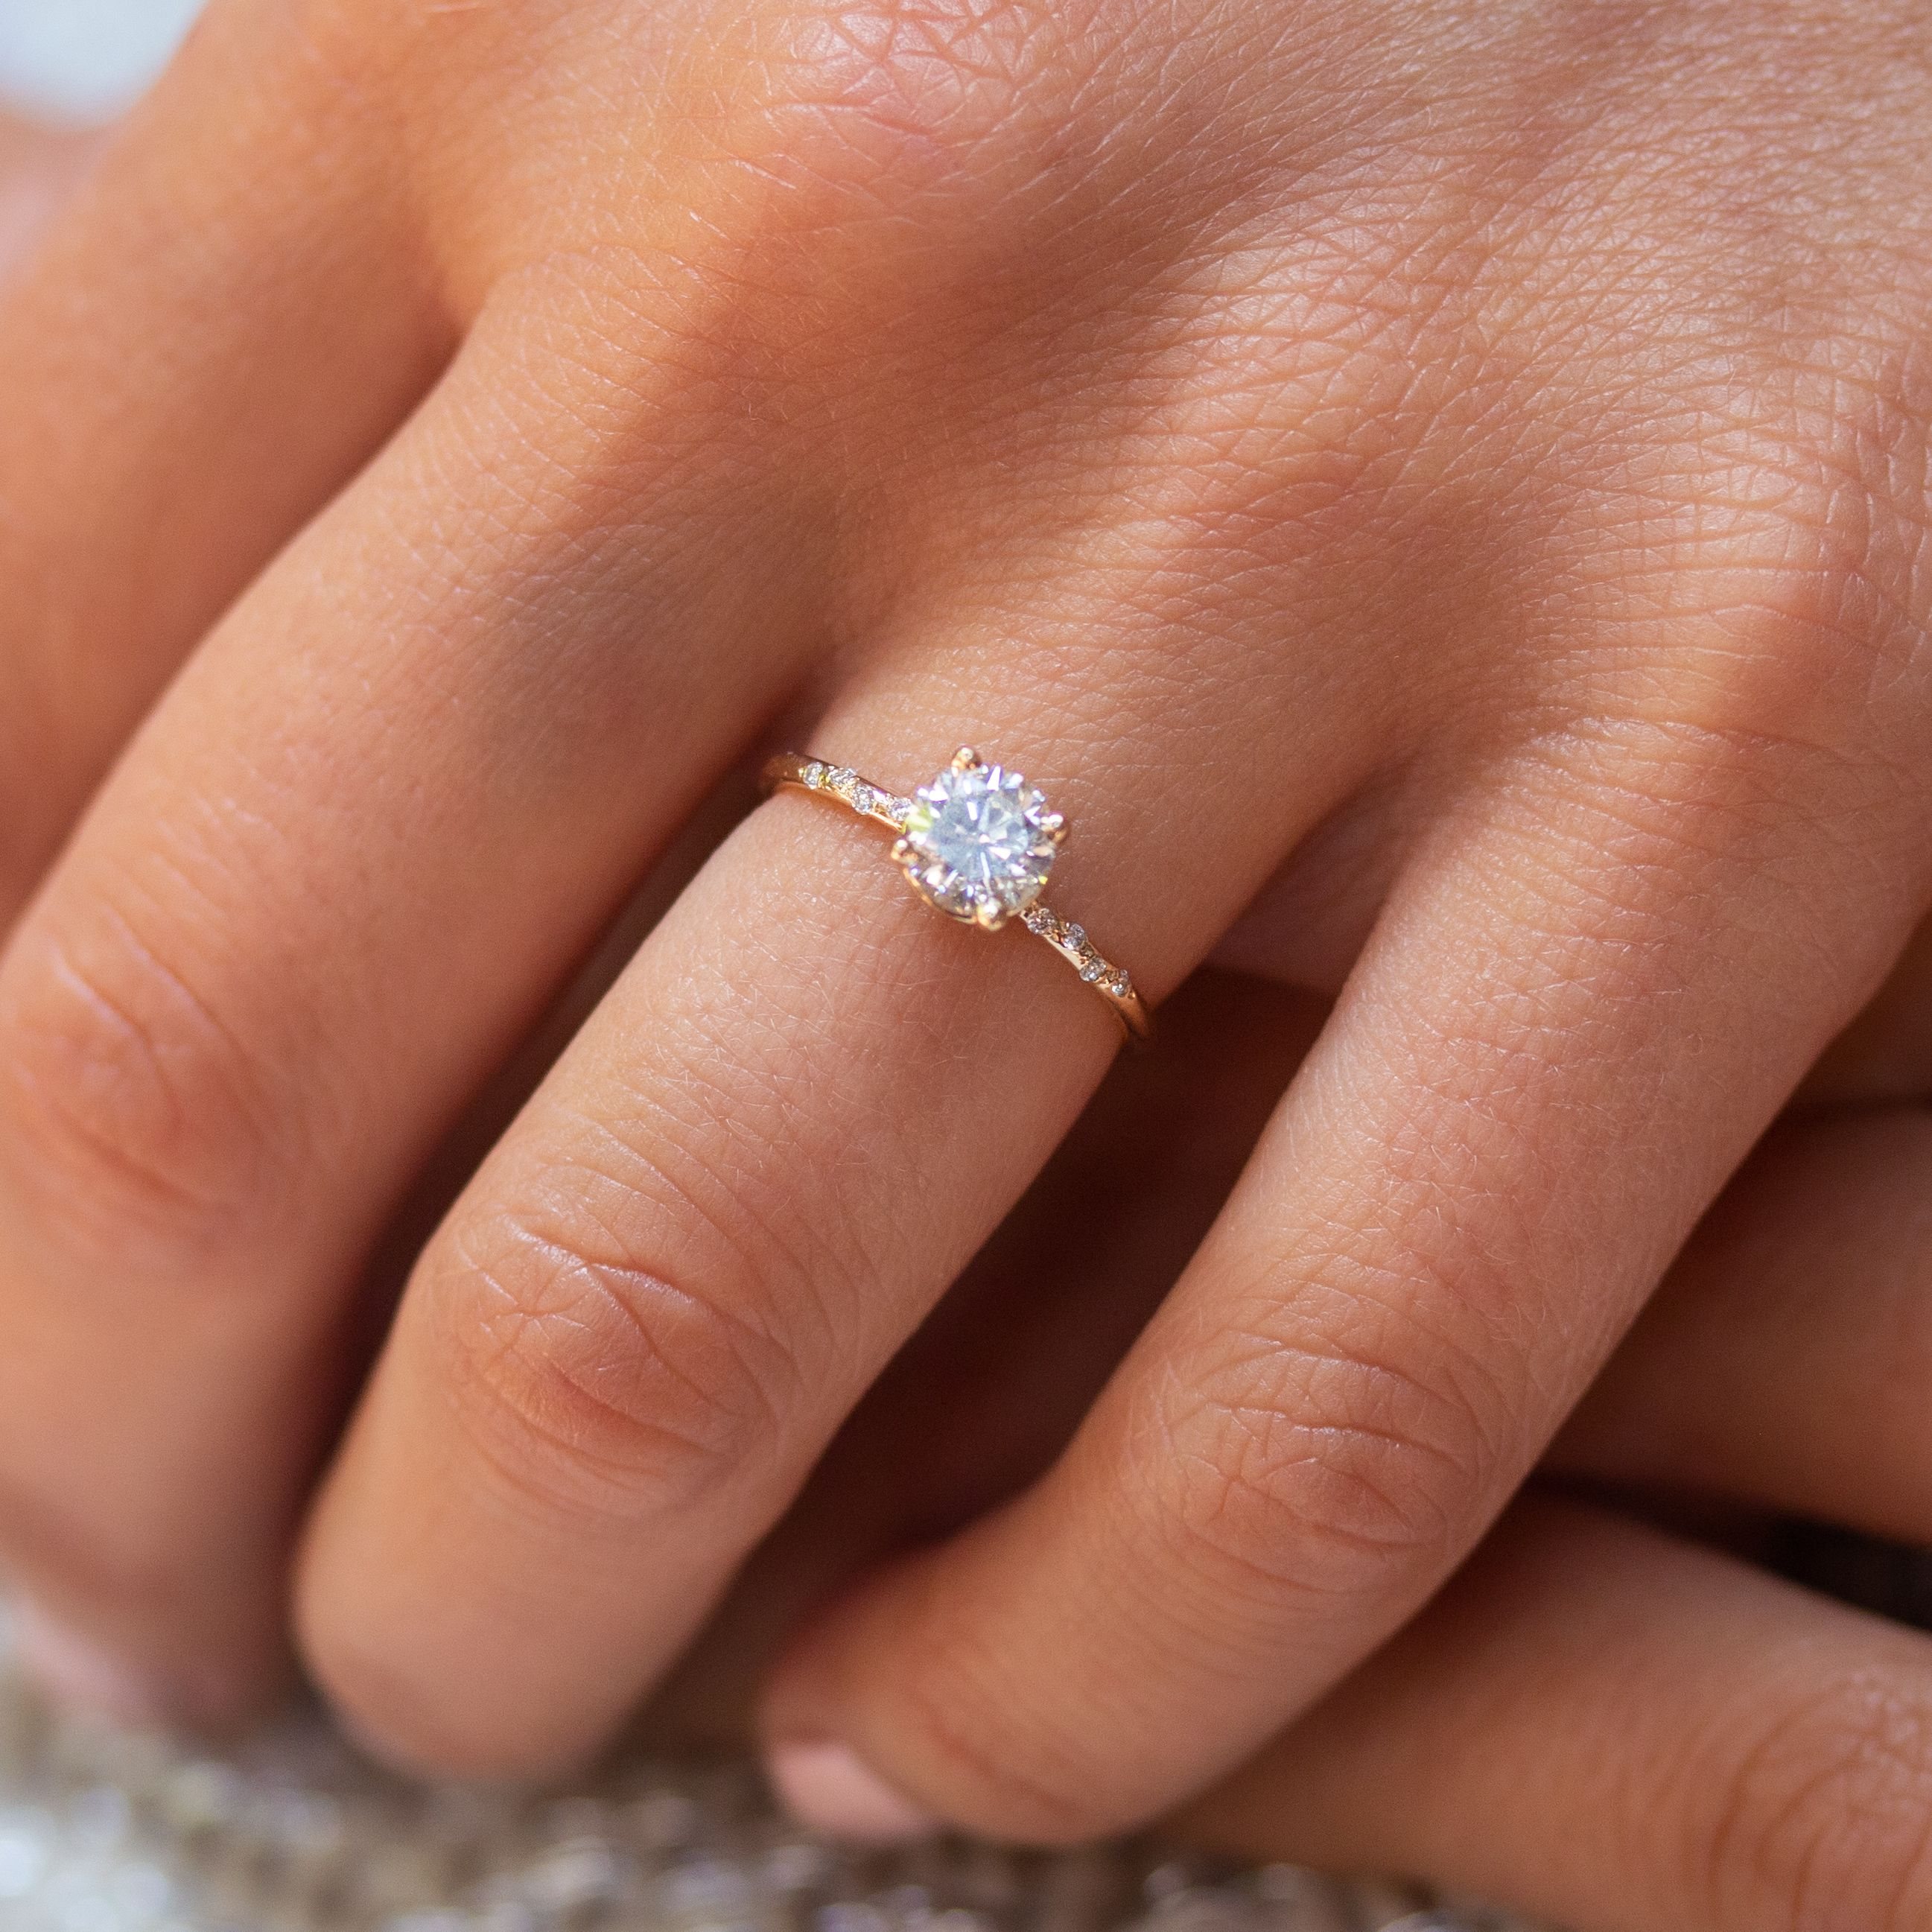 2020 New Rings For Women Street Style Jewelry Thin Engagement Ring Ring Mounting Lab Created Diamond Rings Cheap